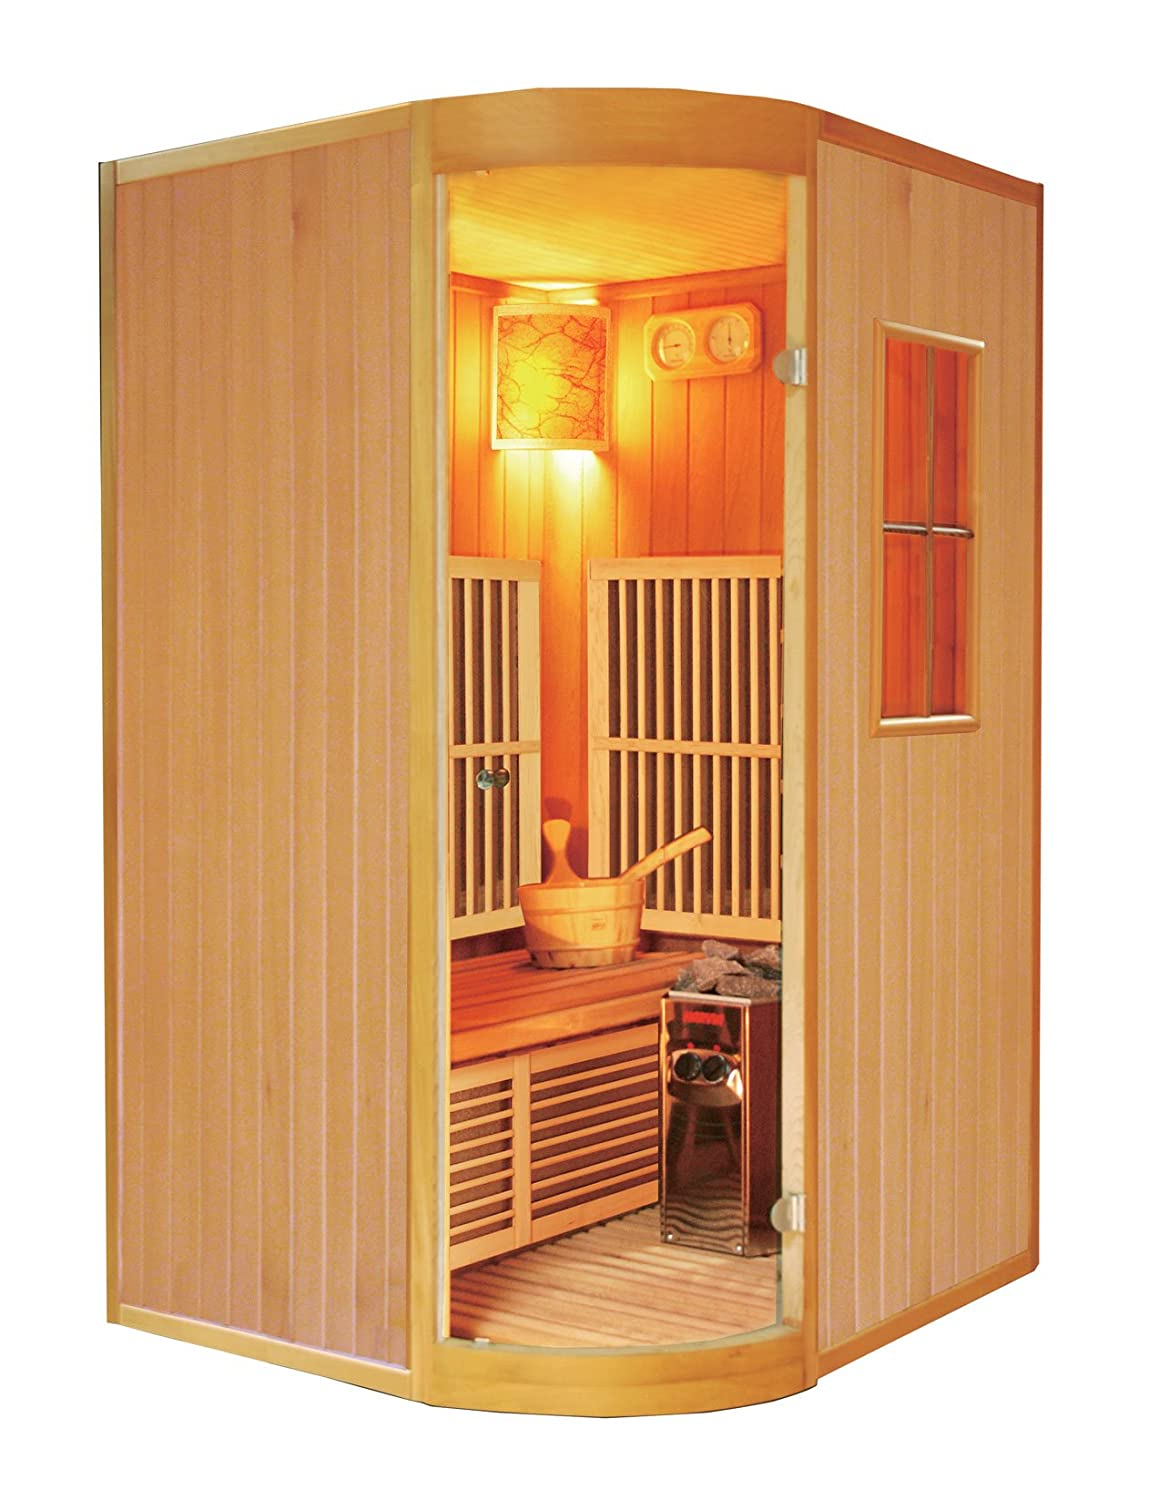 famous kleine sauna kaufen ii26 kyushucon. Black Bedroom Furniture Sets. Home Design Ideas